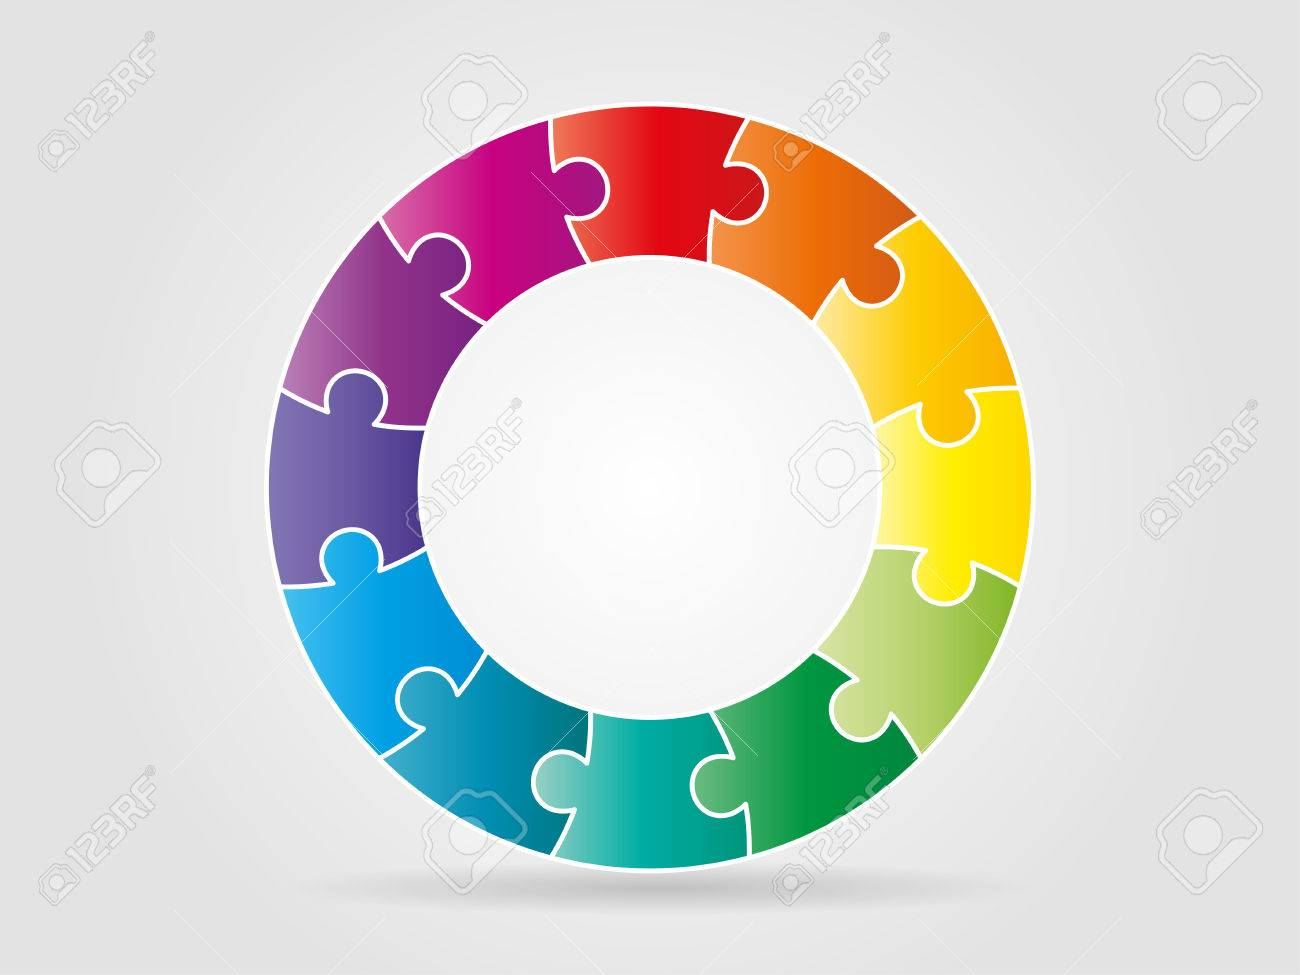 Colorful rainbow puzzle pieces forming a circle pattern - 30397514